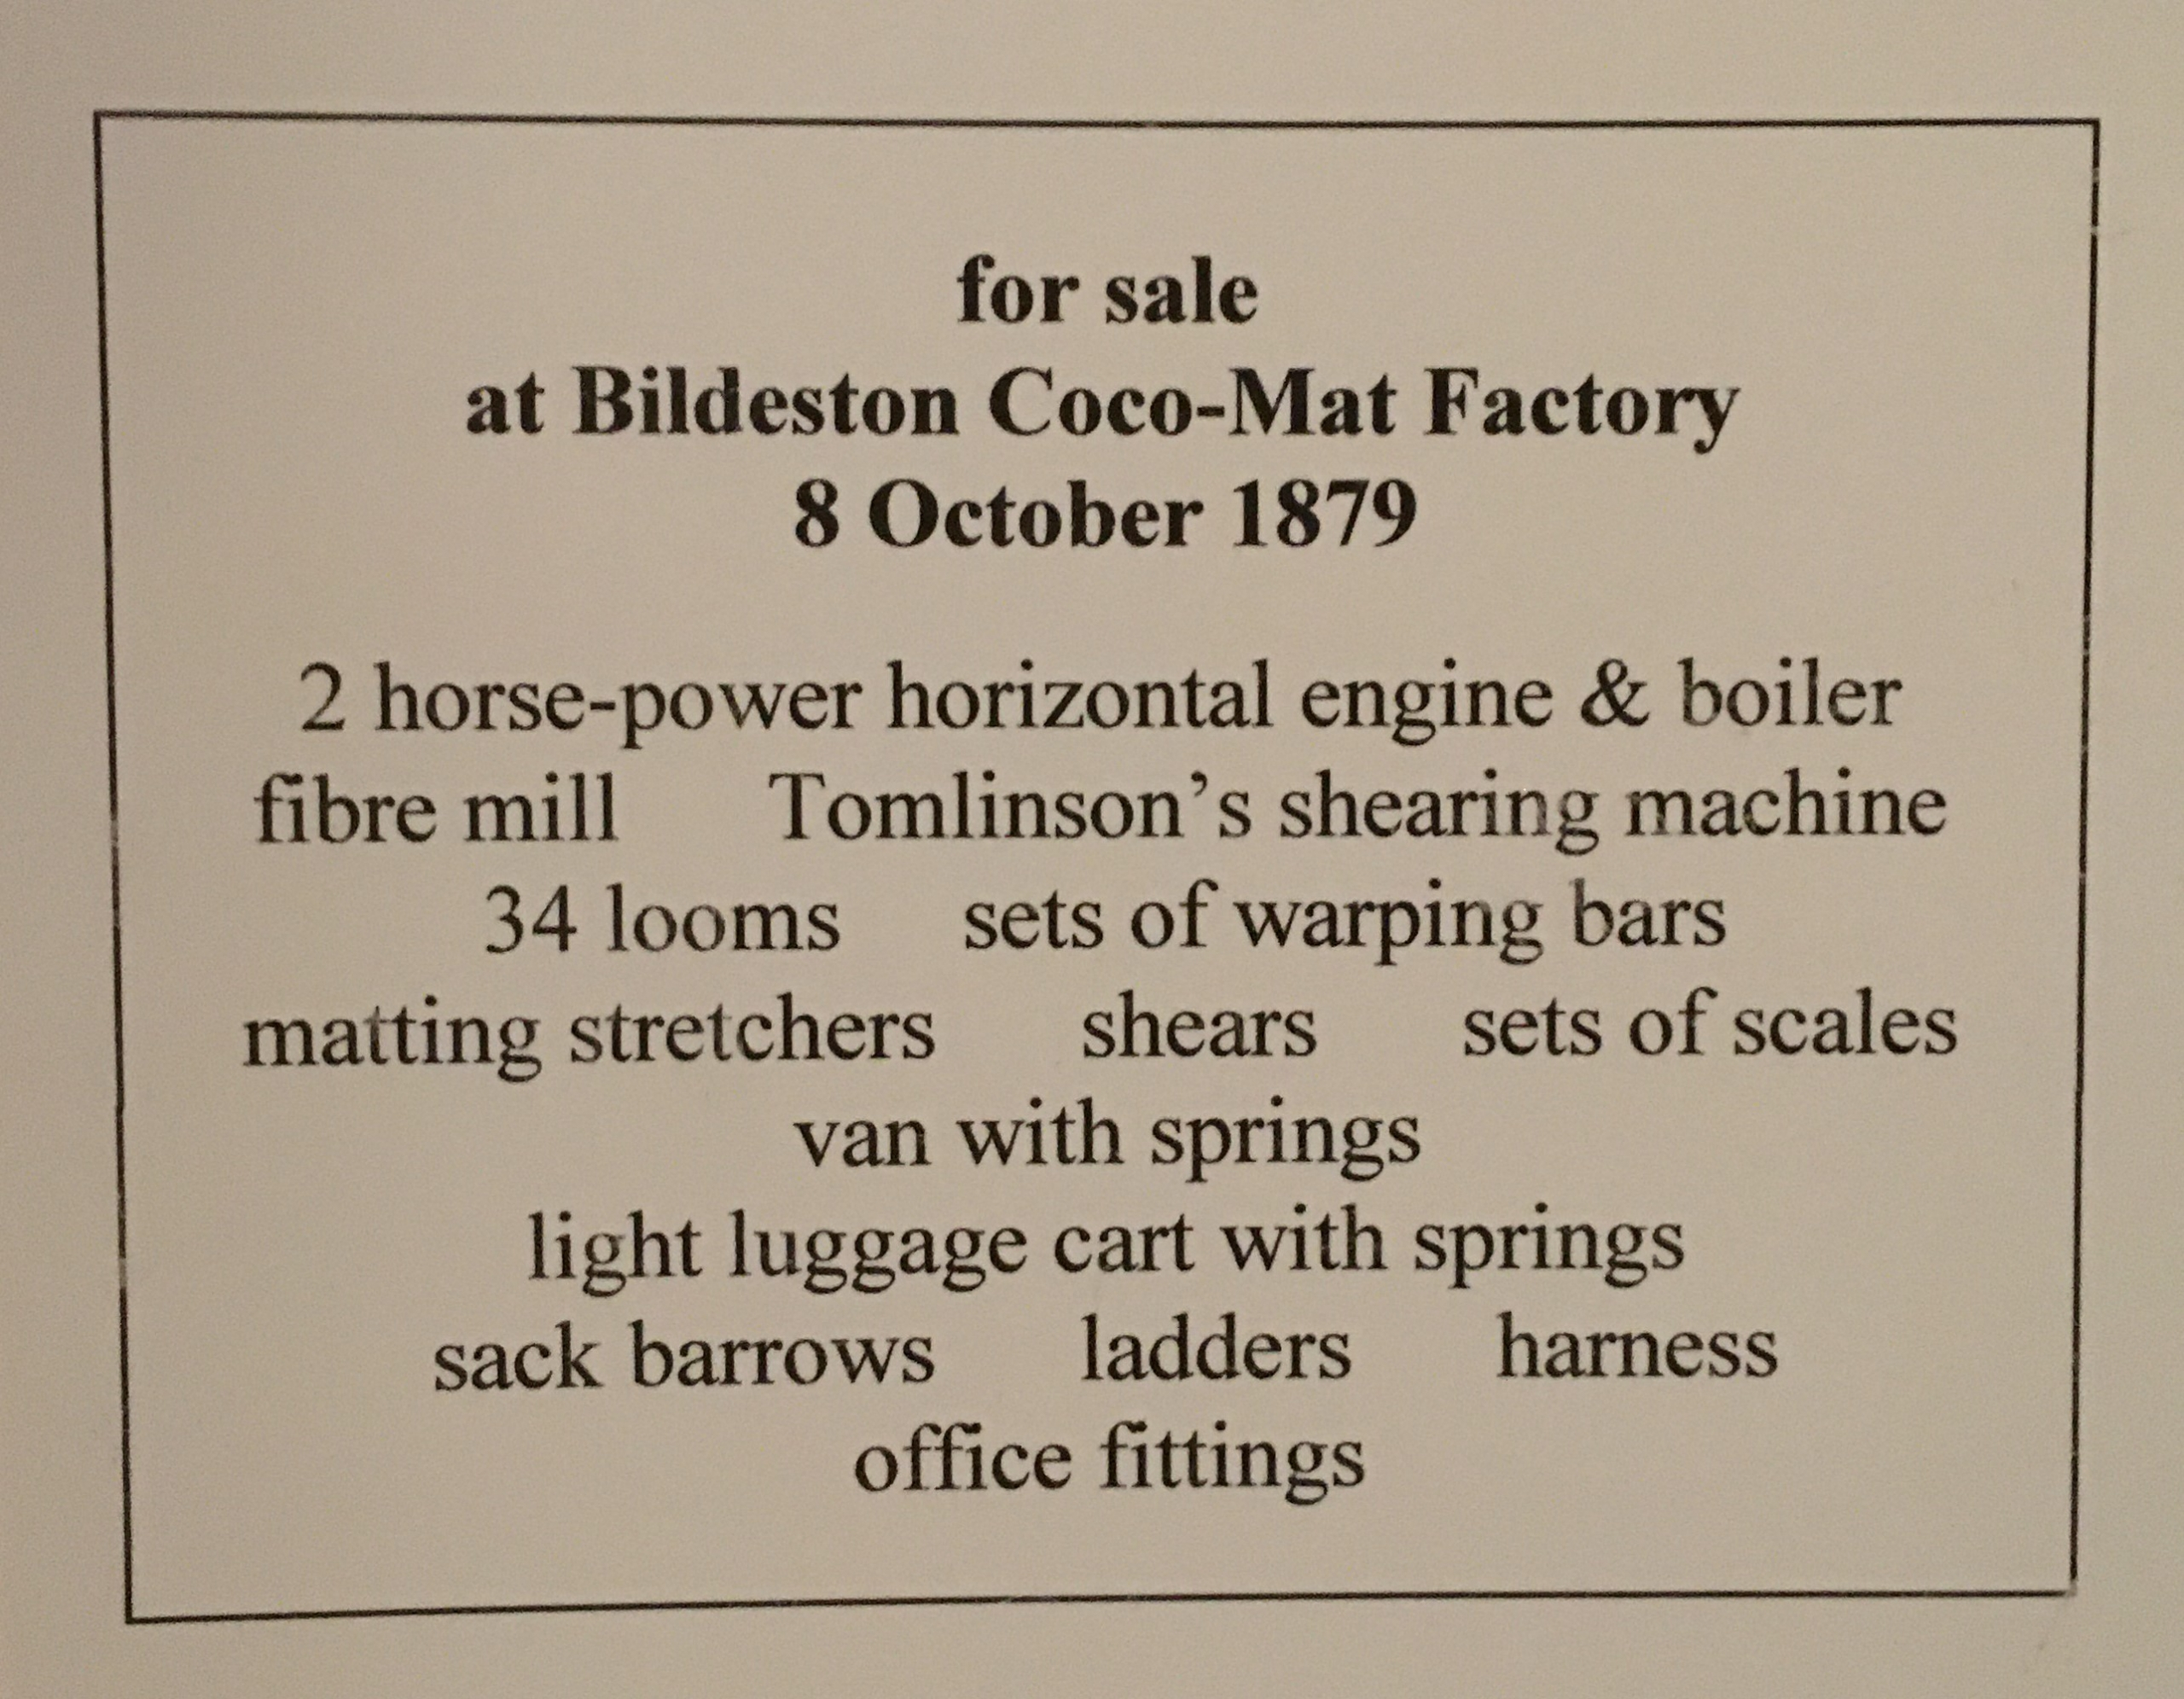 Matting factory sale notice detailing 2 horsepower horizontal engine & boiler, 34 looms and more